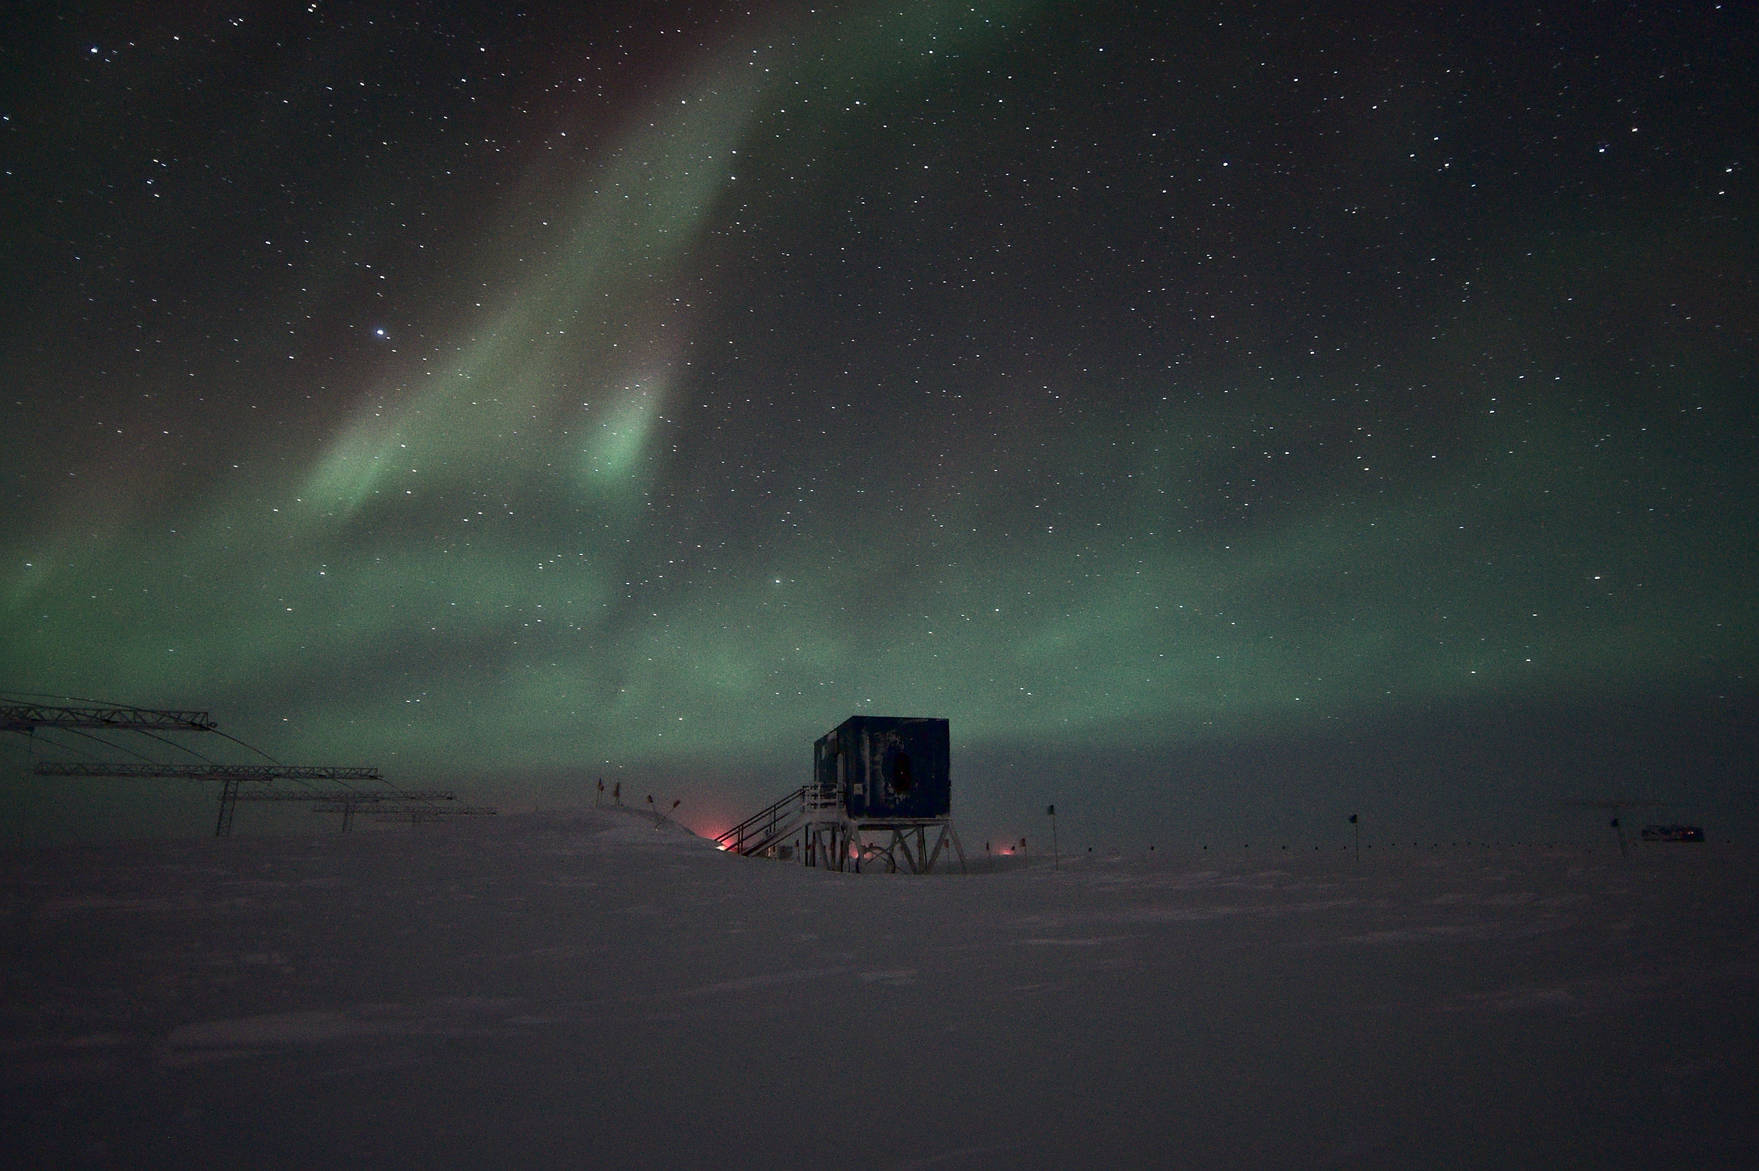 The south pole SuperDARN data acquisition centre